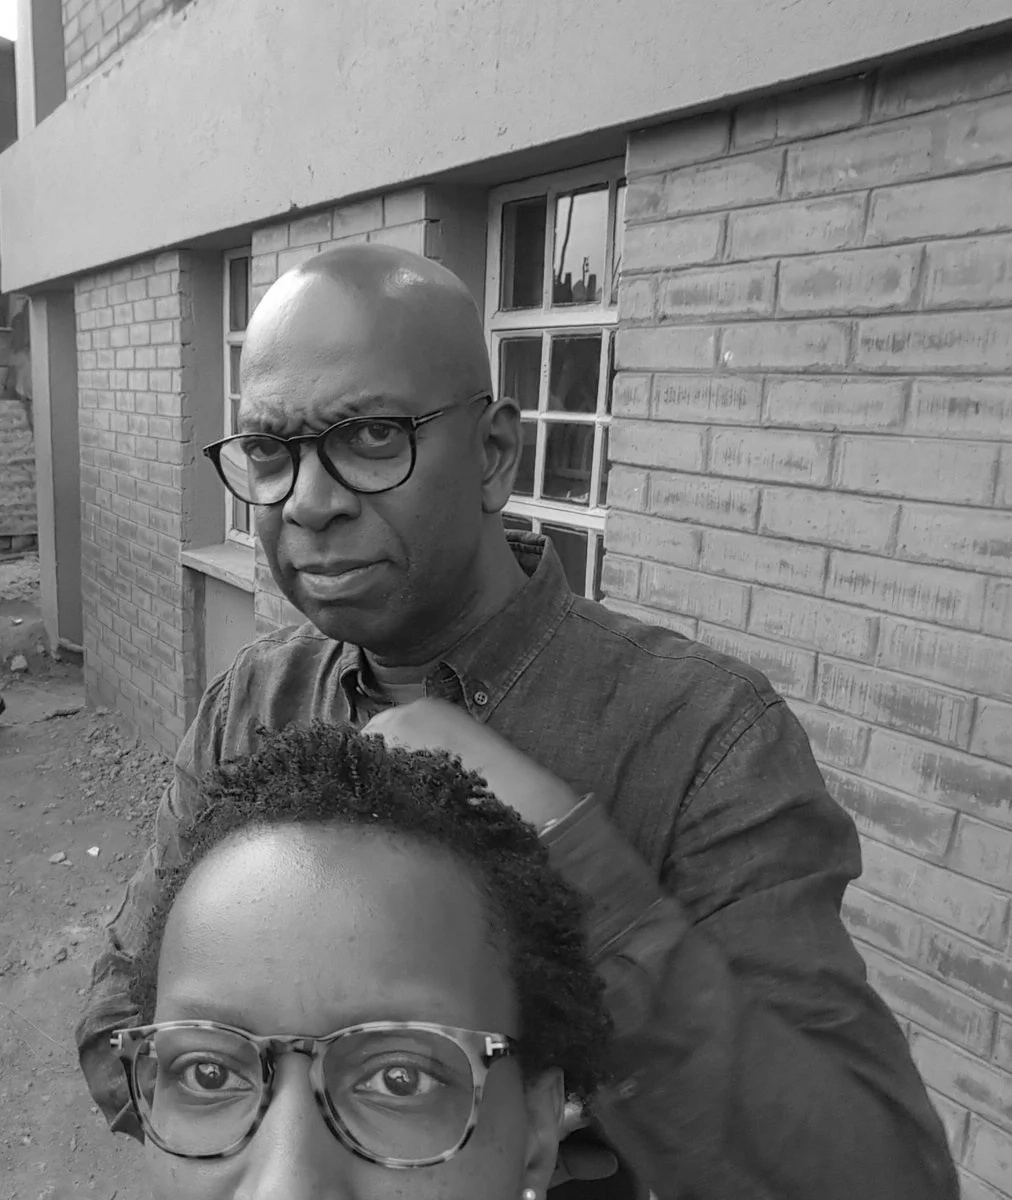 Bob Collymore's wife celebrates his birthday with a cheeky message